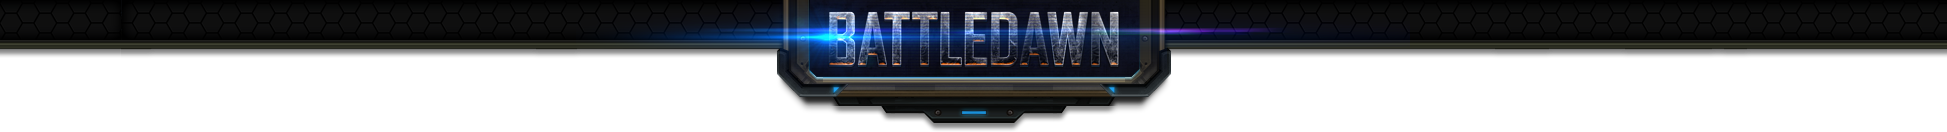 11 - BATTLE DAWN: IS A FREE MULTIPLAYER ONLINE GAME BASED ON STRATEGY, COMMUNITY AND SKILL. USING EVERYTHING FROM DIPLOMACY TO WAR, YOU MUST STRIVE TO BUILD AN EMPIRE.